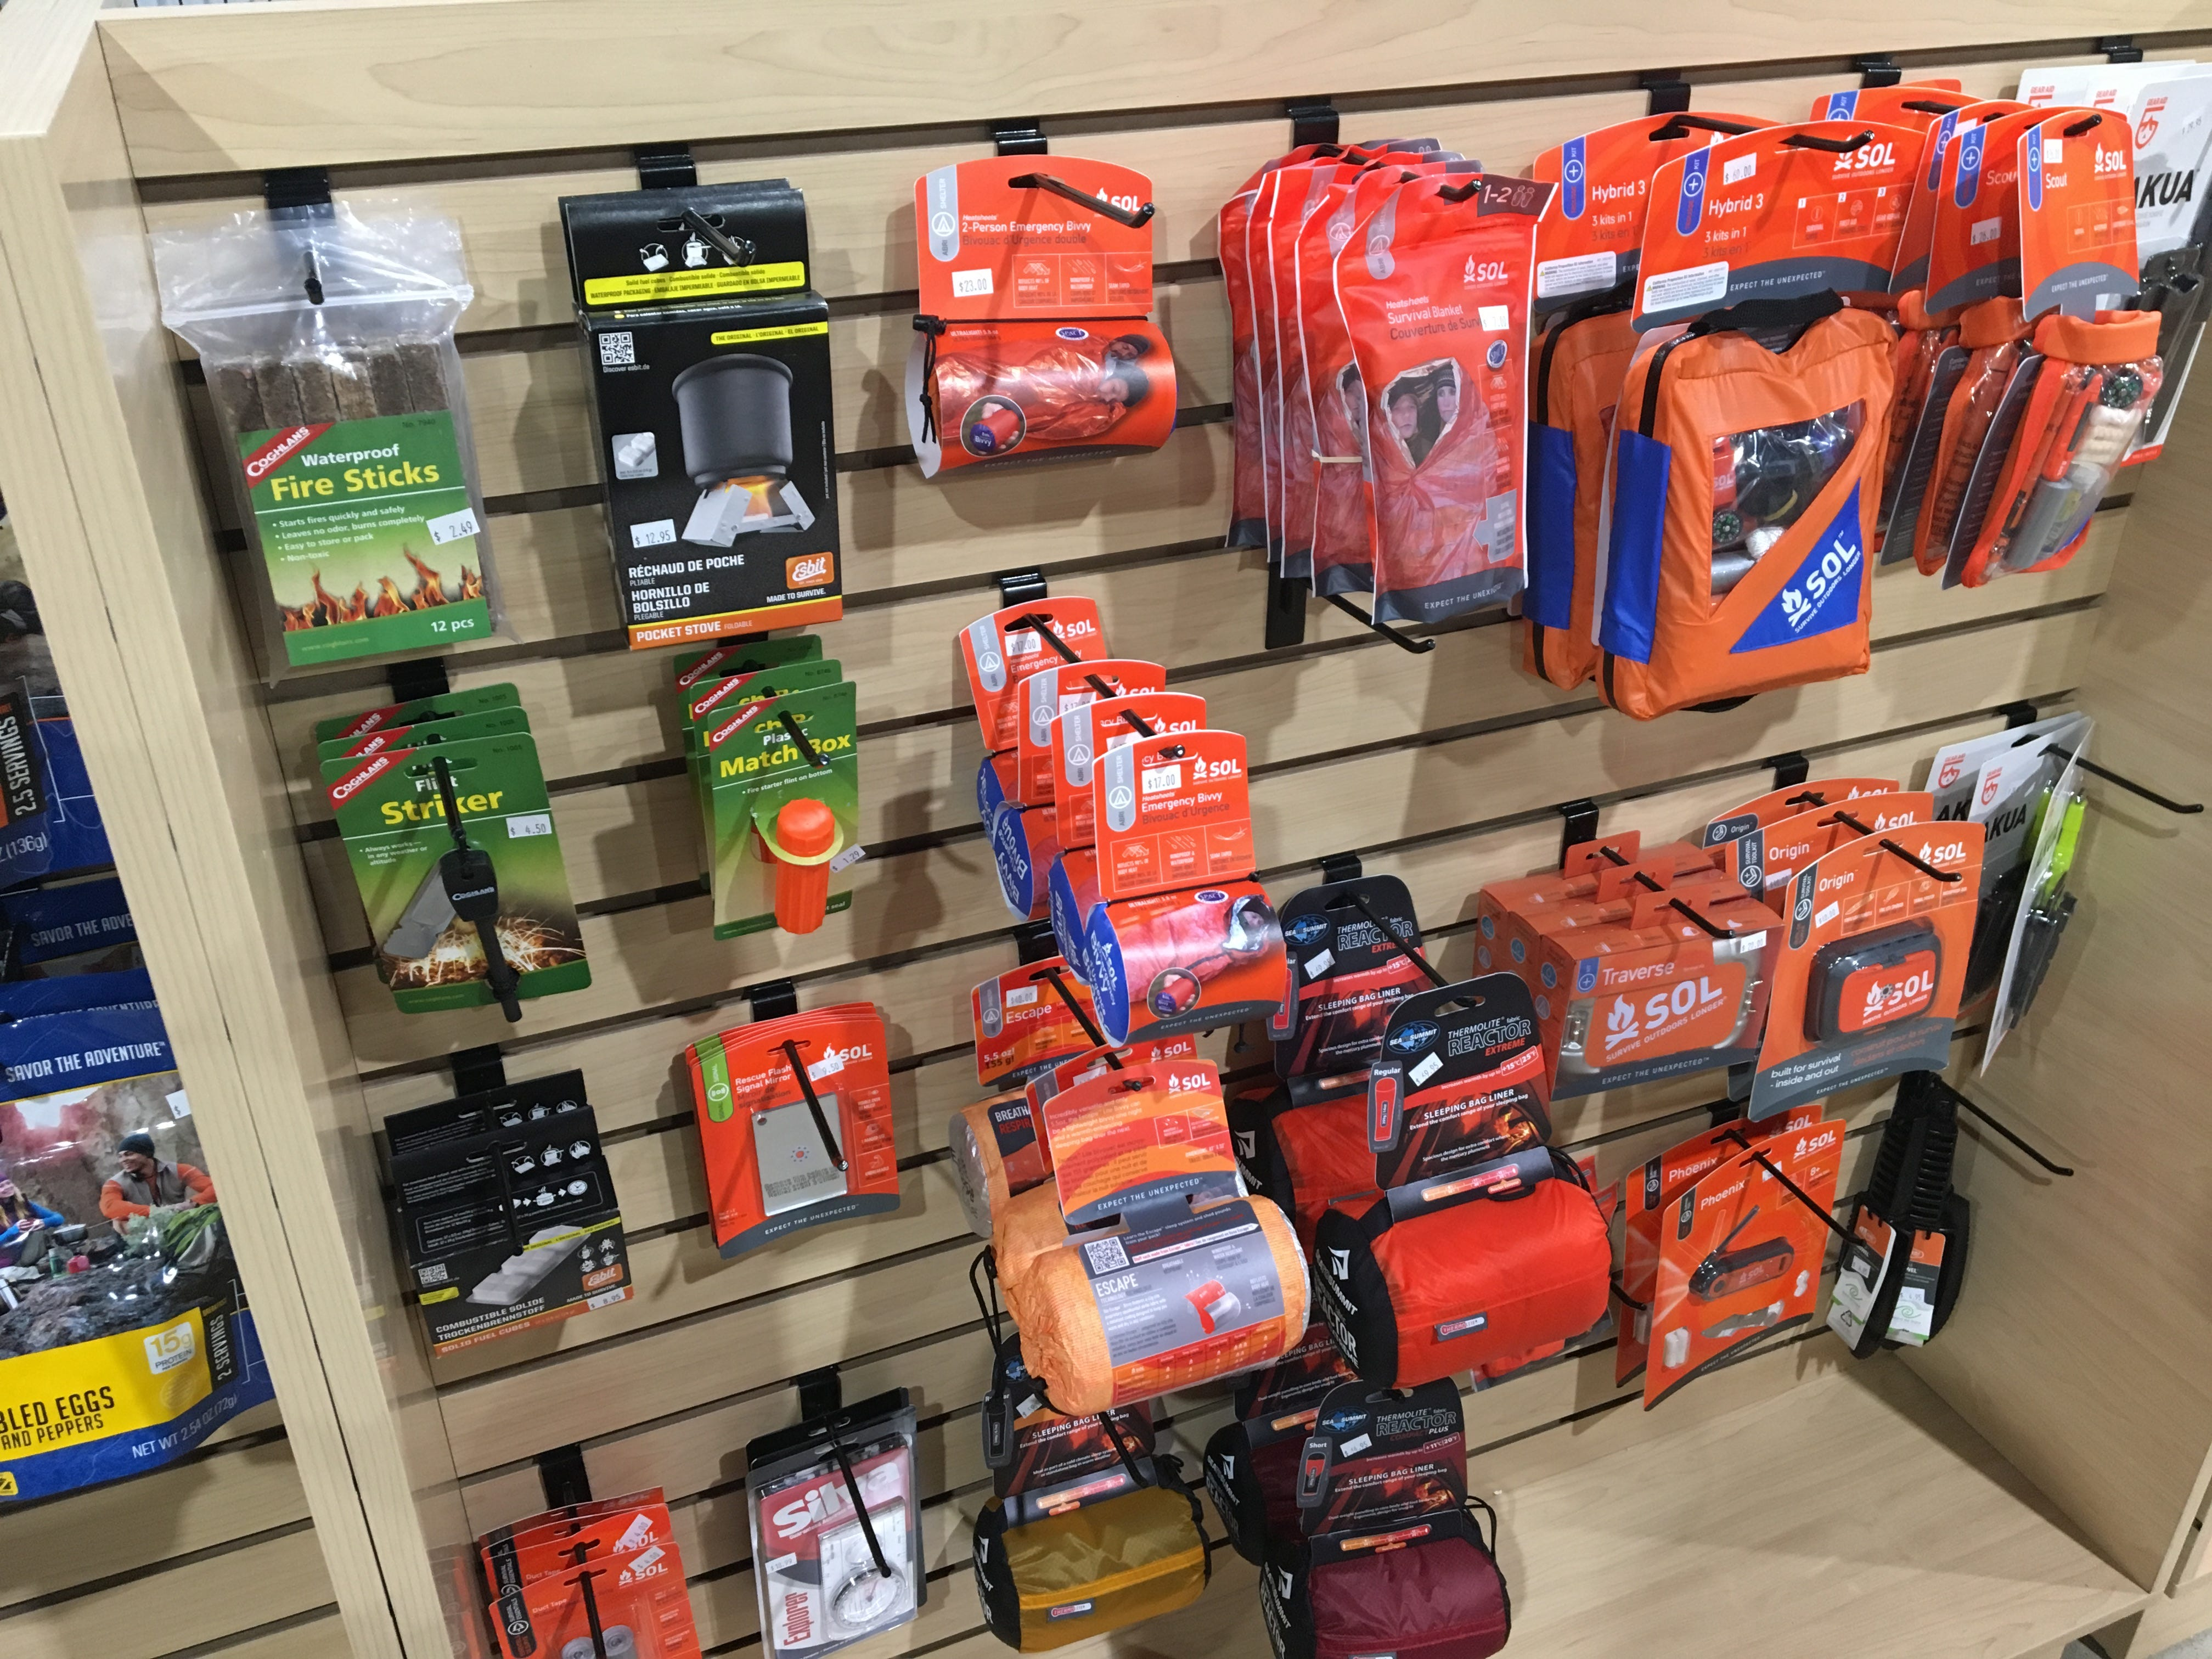 If you're an outdoor enthusiast, it's not if but when you'll need first-aid. Make sure you're prepared with one of the  medic kits at Hook 1 outfitters in Murfreesboro.